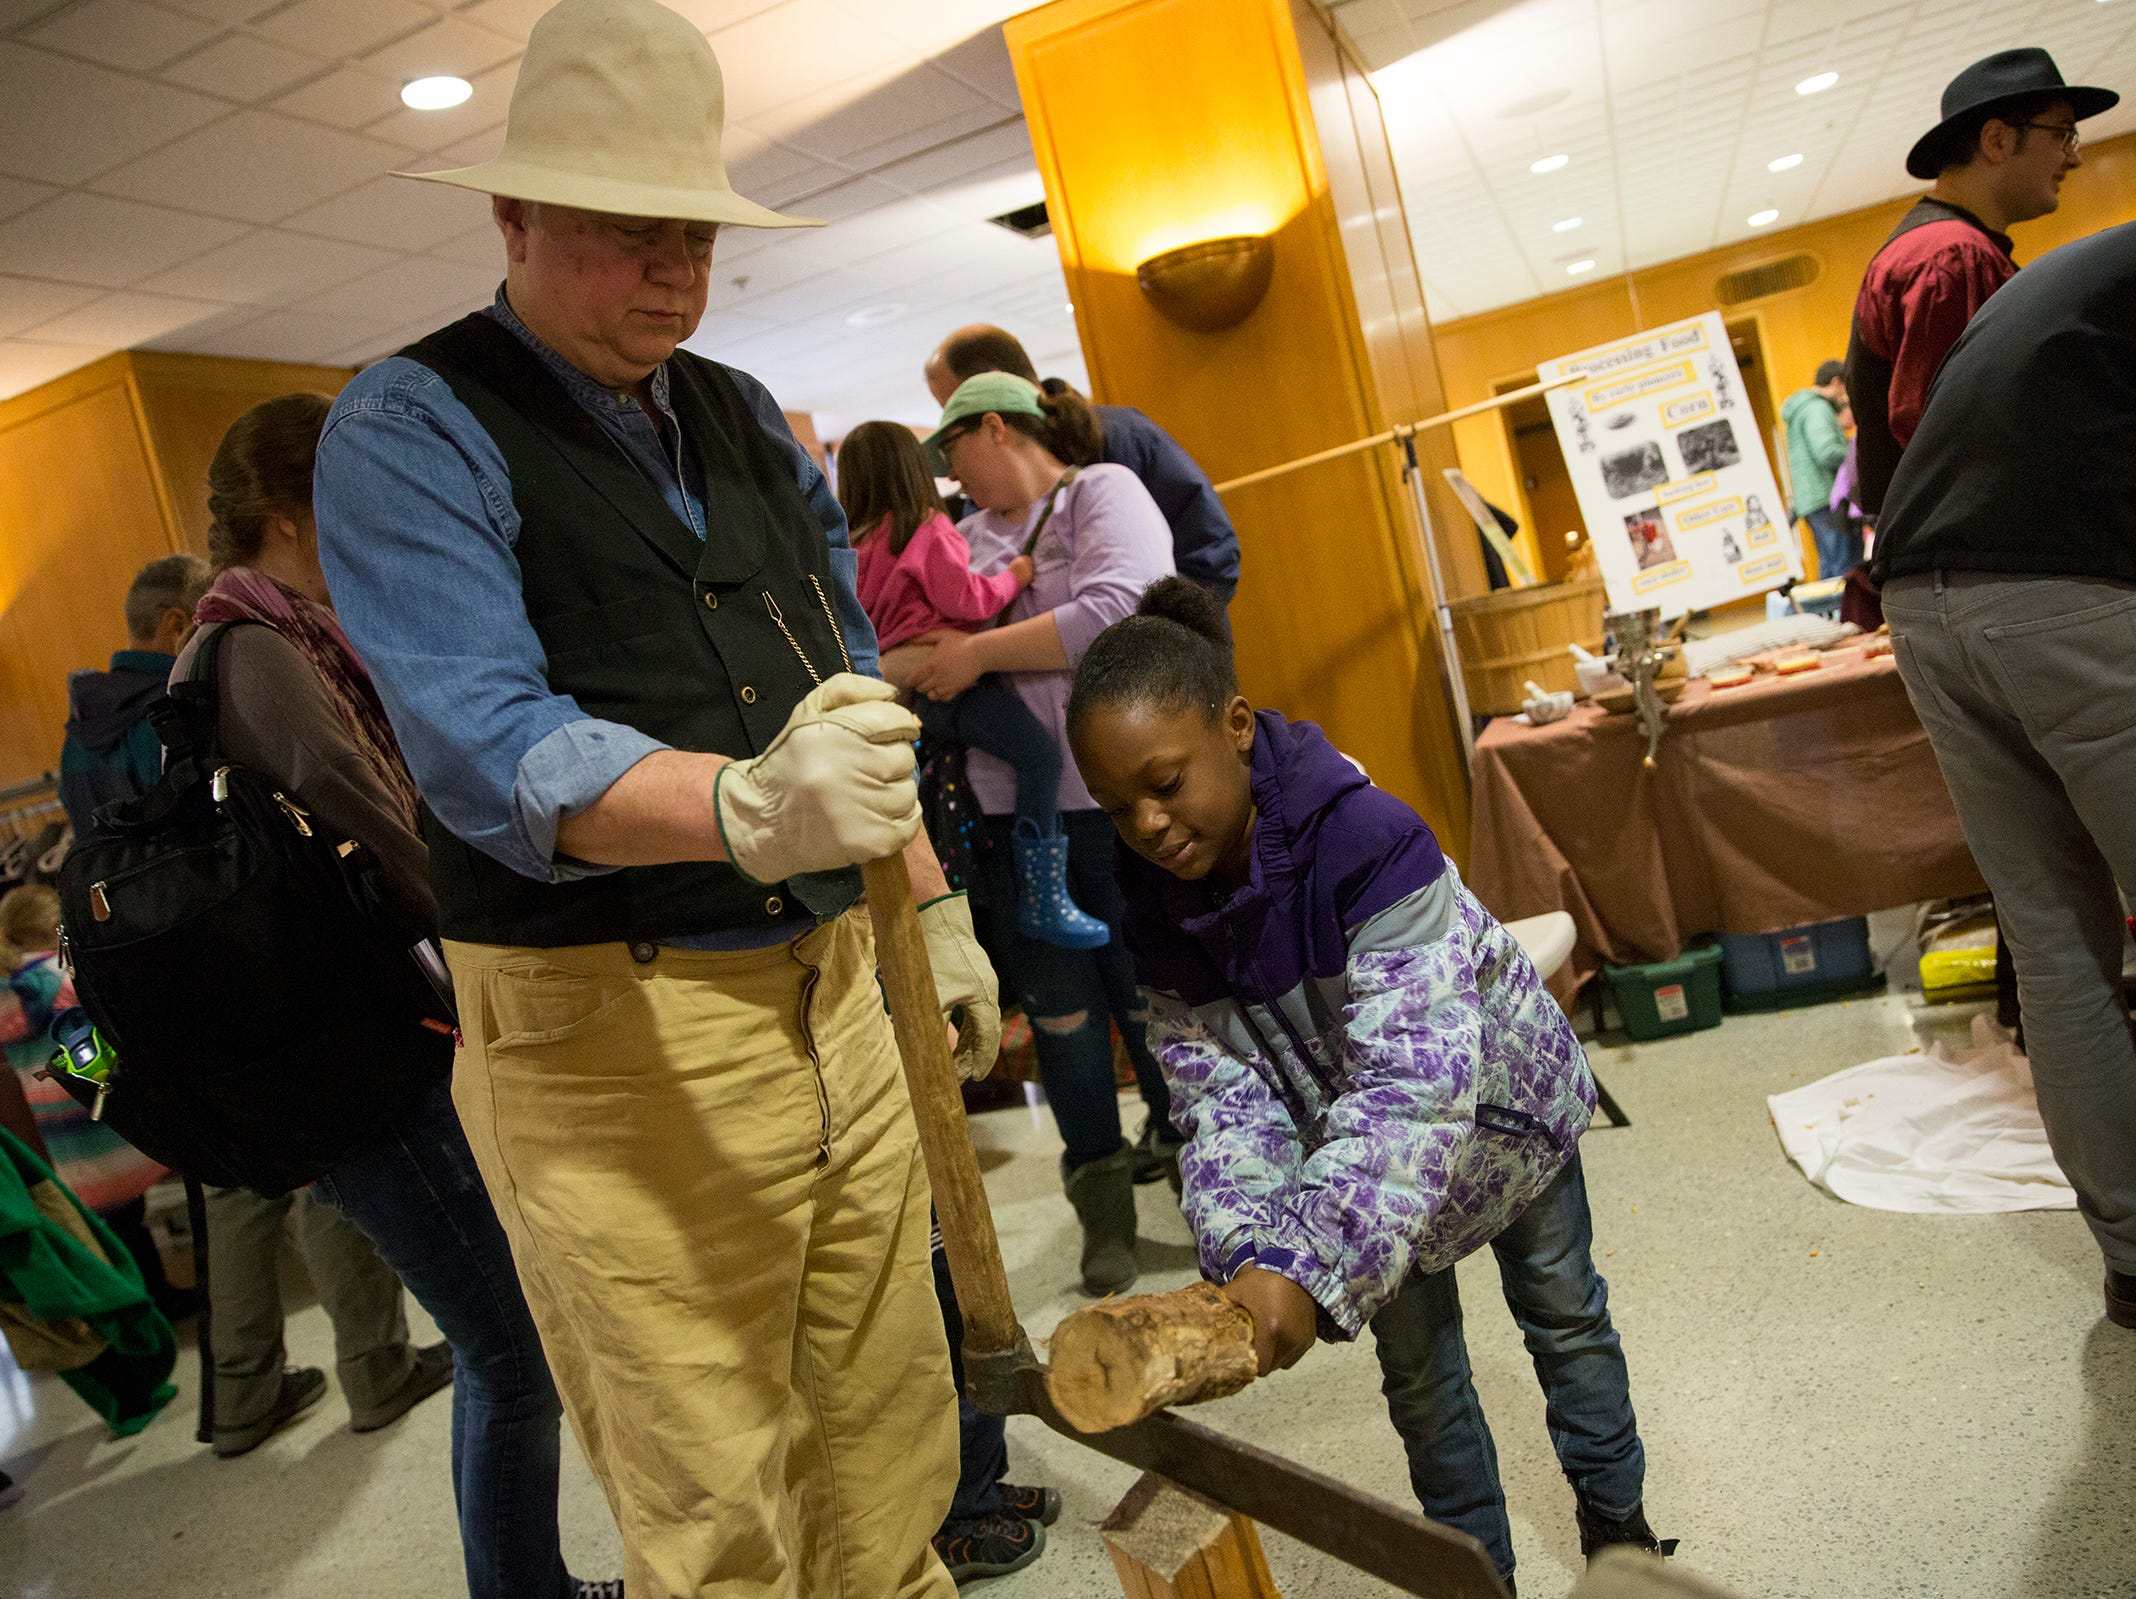 Joe Baron helps Z'amara Ratler, 9, learn how to chop wood during Oregon's 160th Birthday Celebration at the Oregon State Capitol in Salem on Saturday, Feb. 16, 2019.